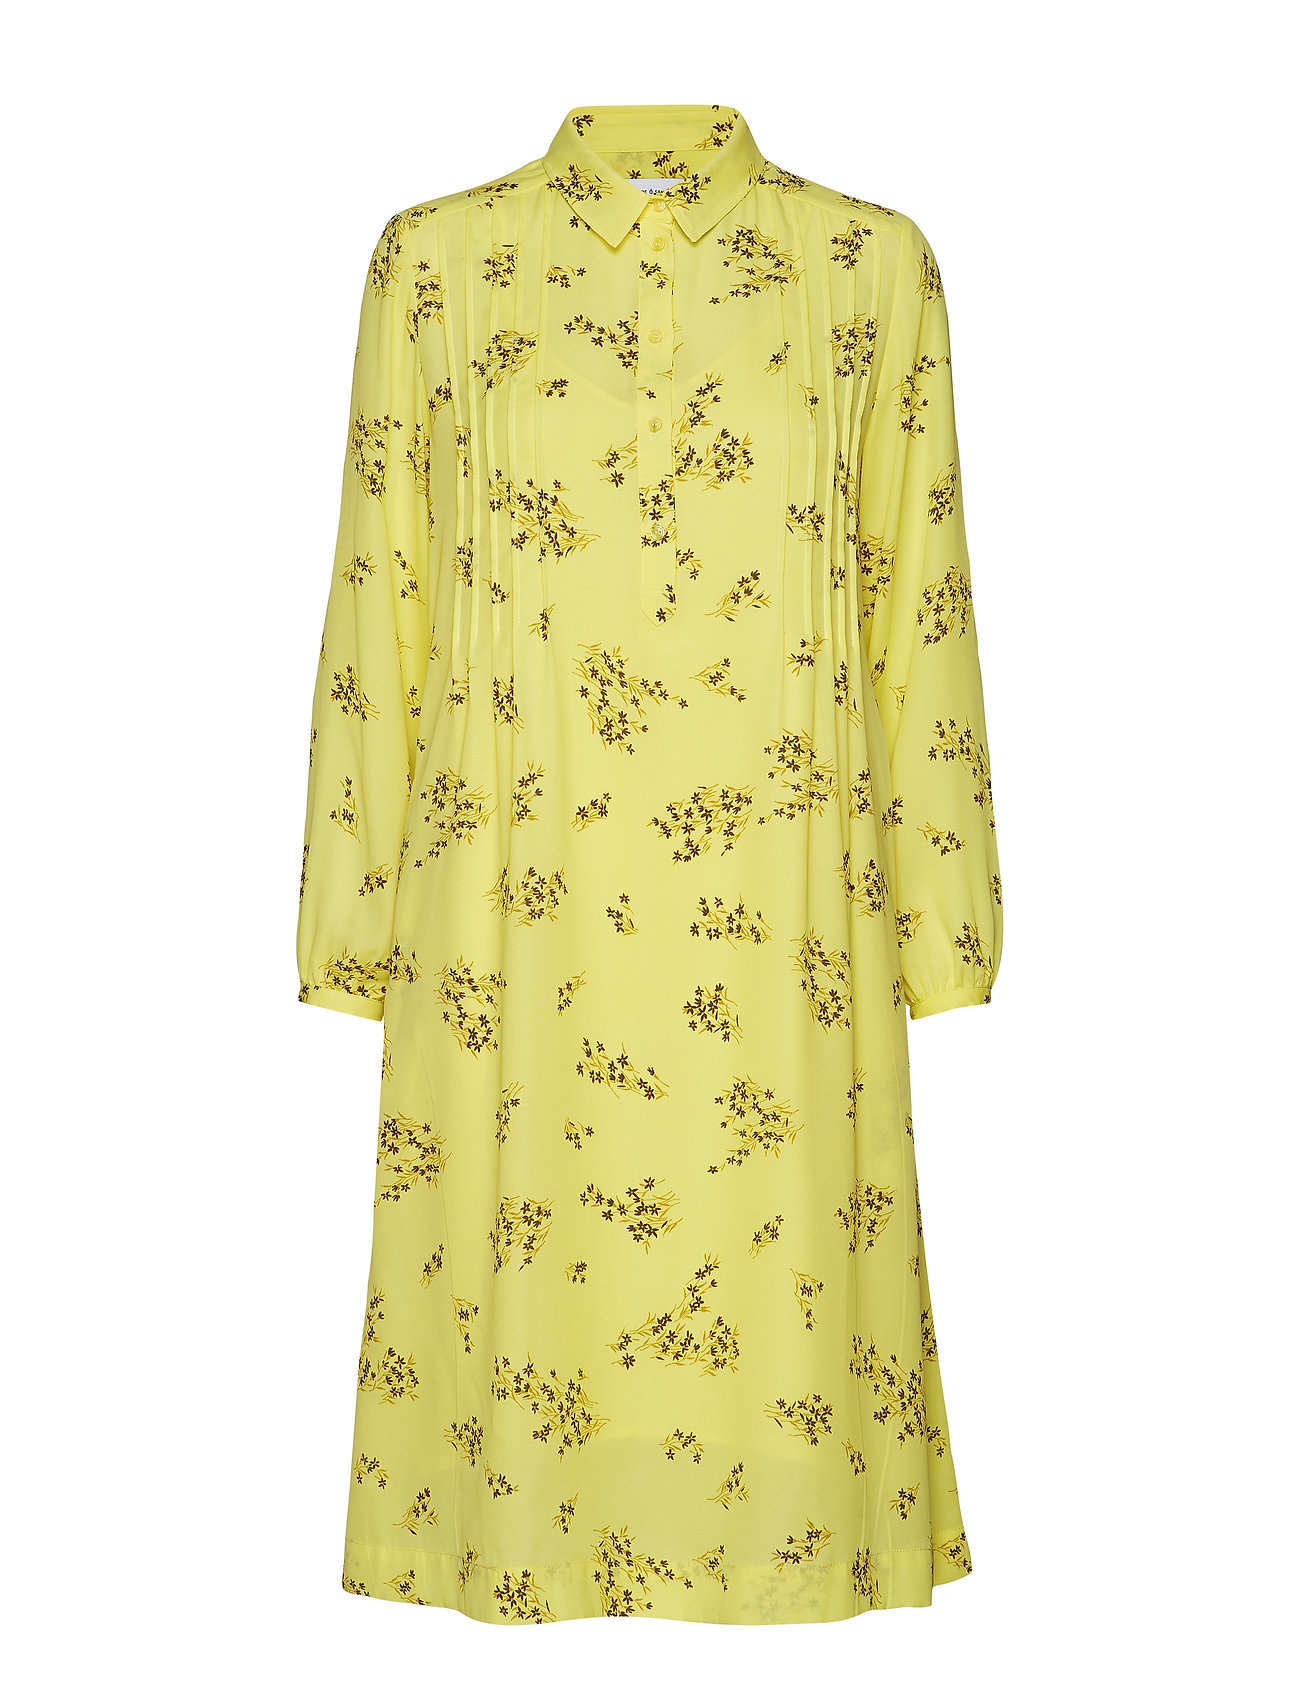 Aop Shirt 6891yellow Dress BreezeSamsøeamp; Musa 08Nwmn